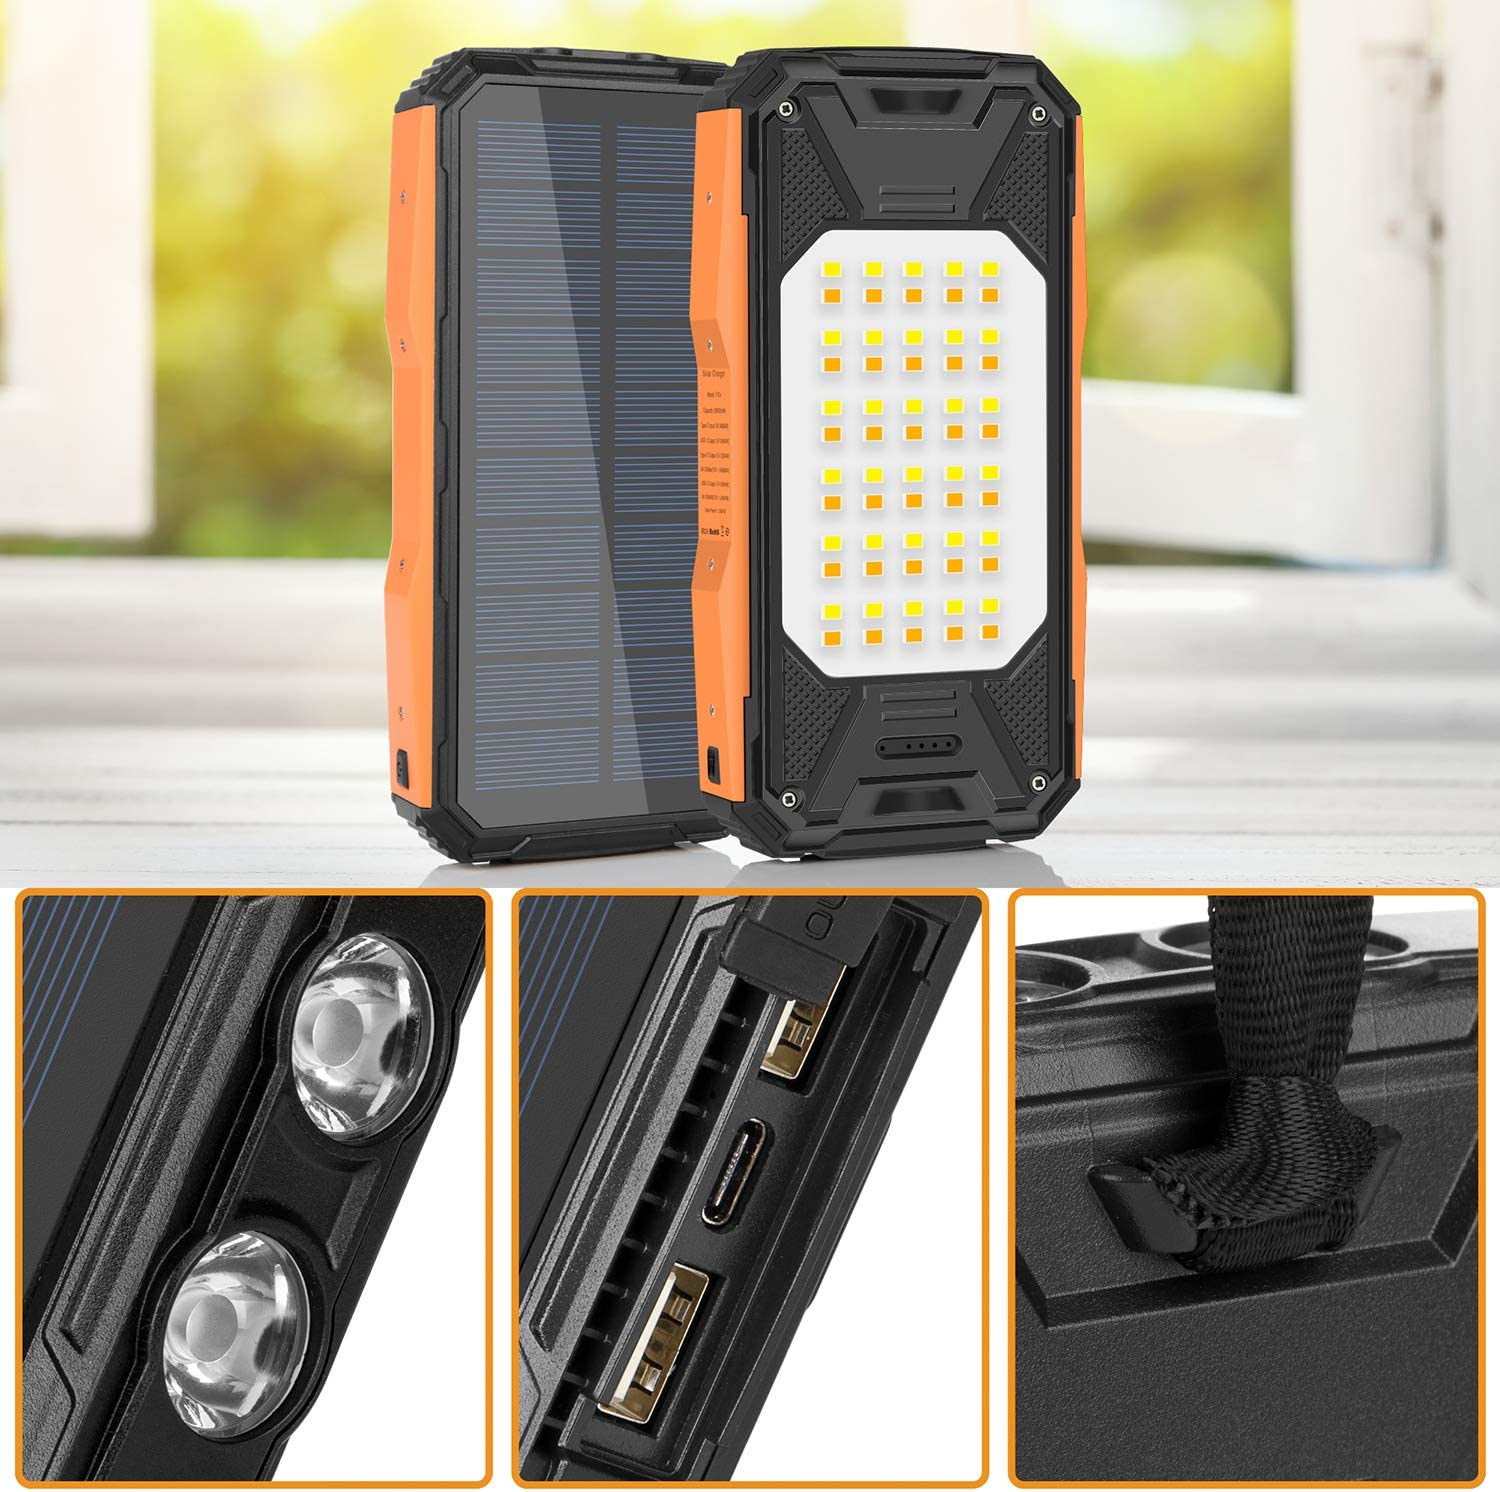 Blue Solar Charger 26800mAh Waterproof External Battery Pack for Camping Outdoor Portable Solar Power Bank USB C PD 18W Fast Charger with Ultra Bright 2 Flashlights and 60 LEDs Panel Light